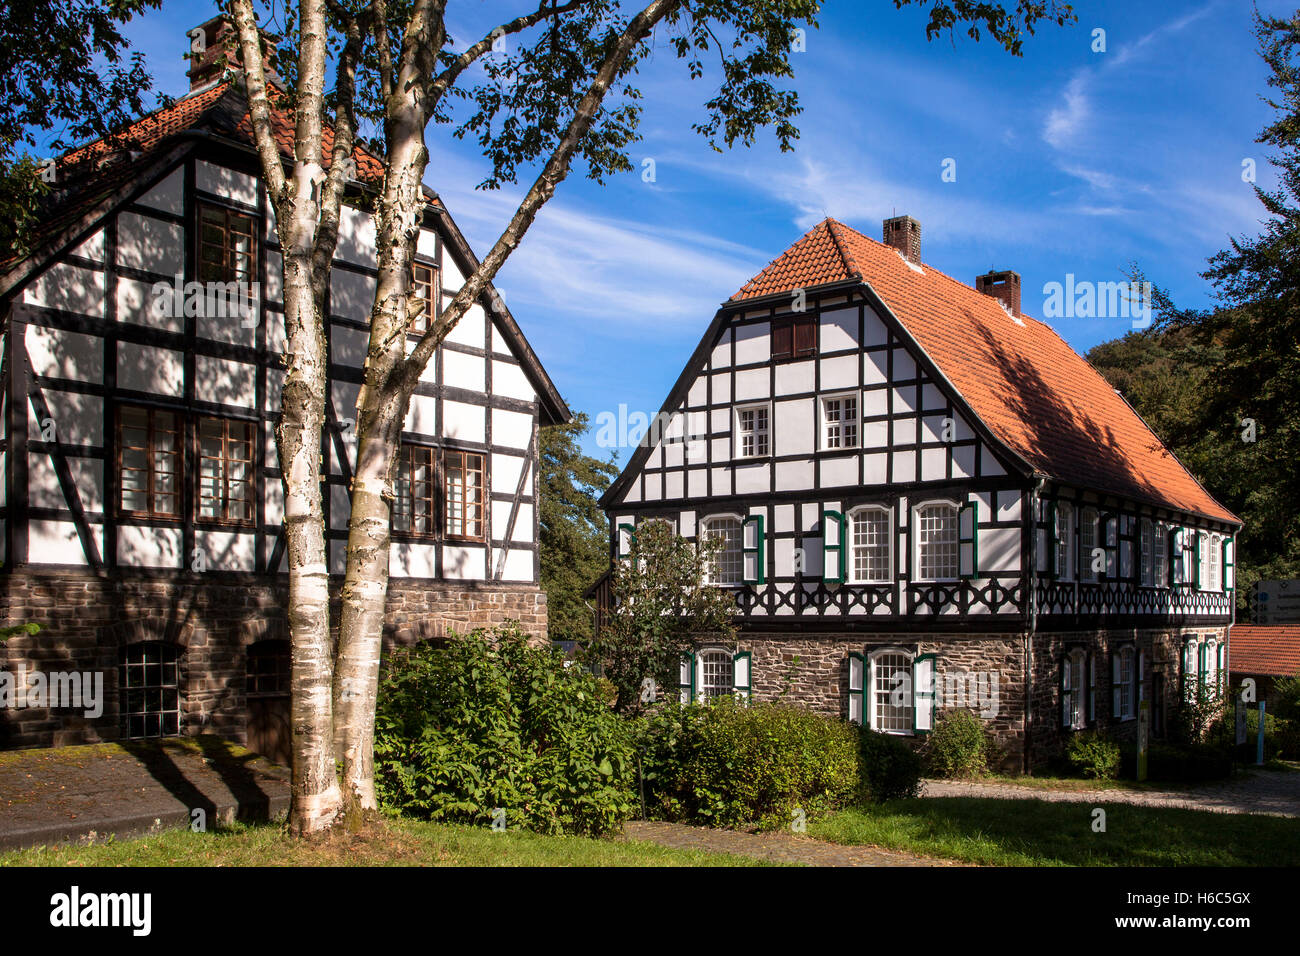 Germany, Hagen, Hagen Open-air Museum, paper mill and printing office. Stock Photo